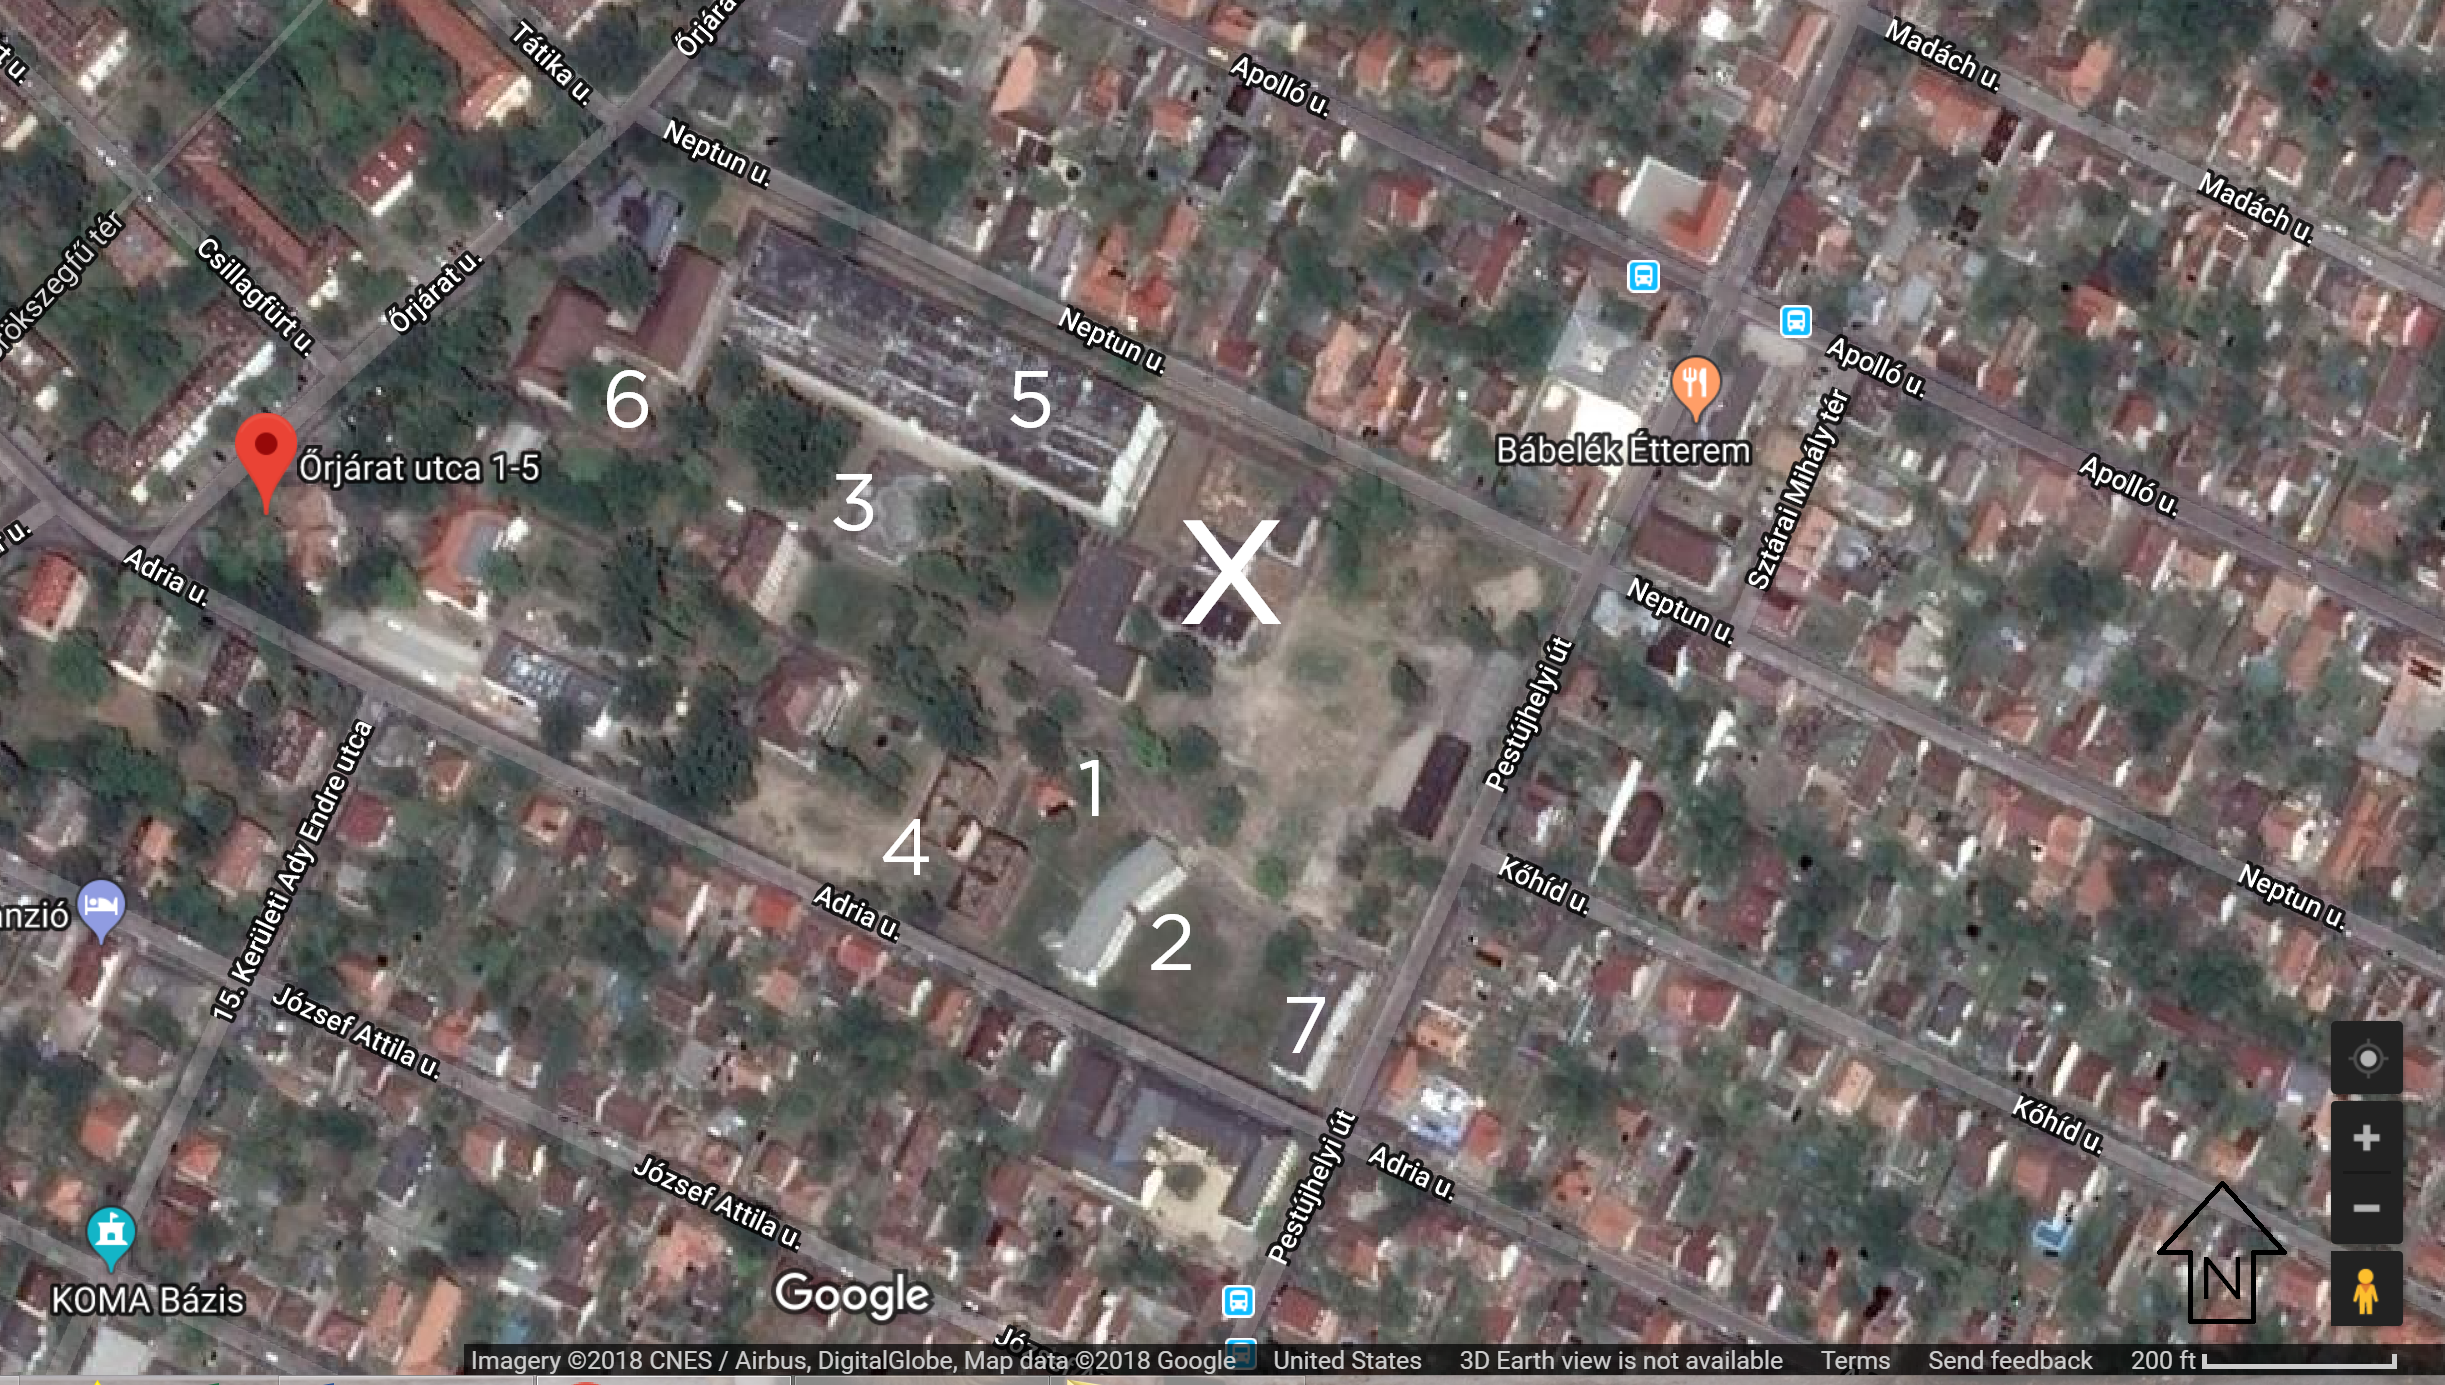 Google Maps January 2018, although some of the buildings were demolished before my December visit